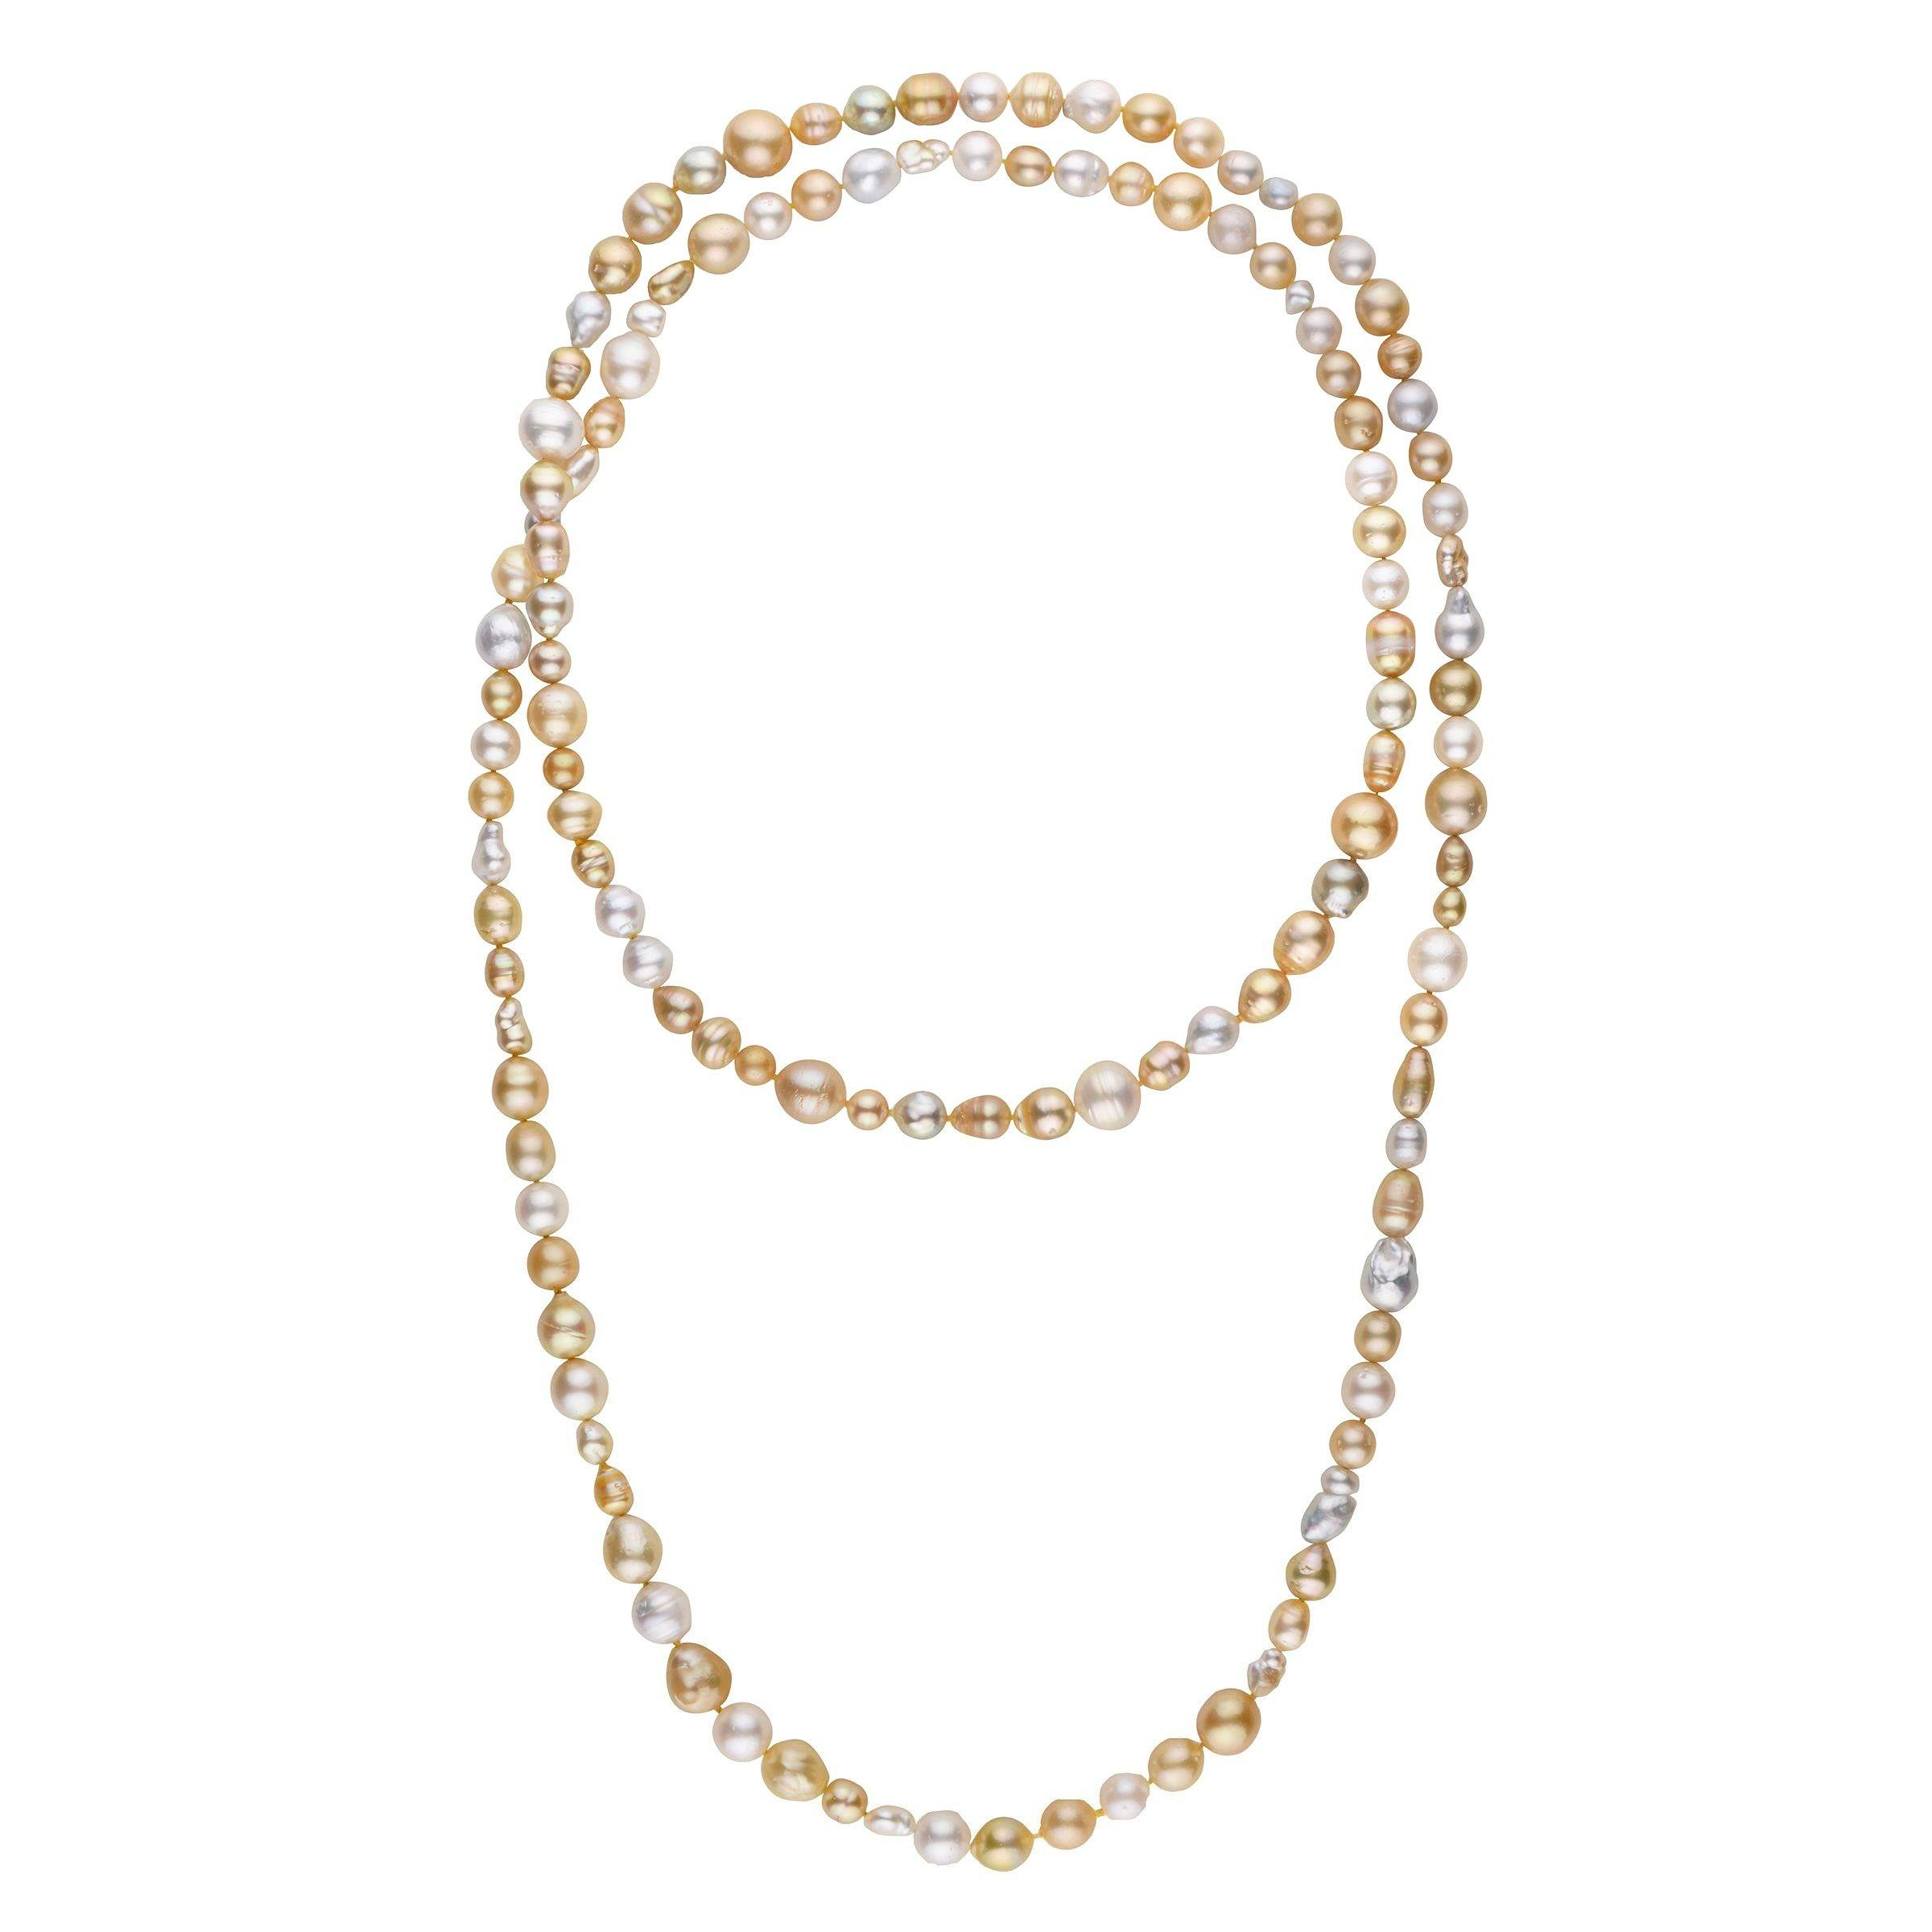 54-inch South Sea Endless Strand Necklace